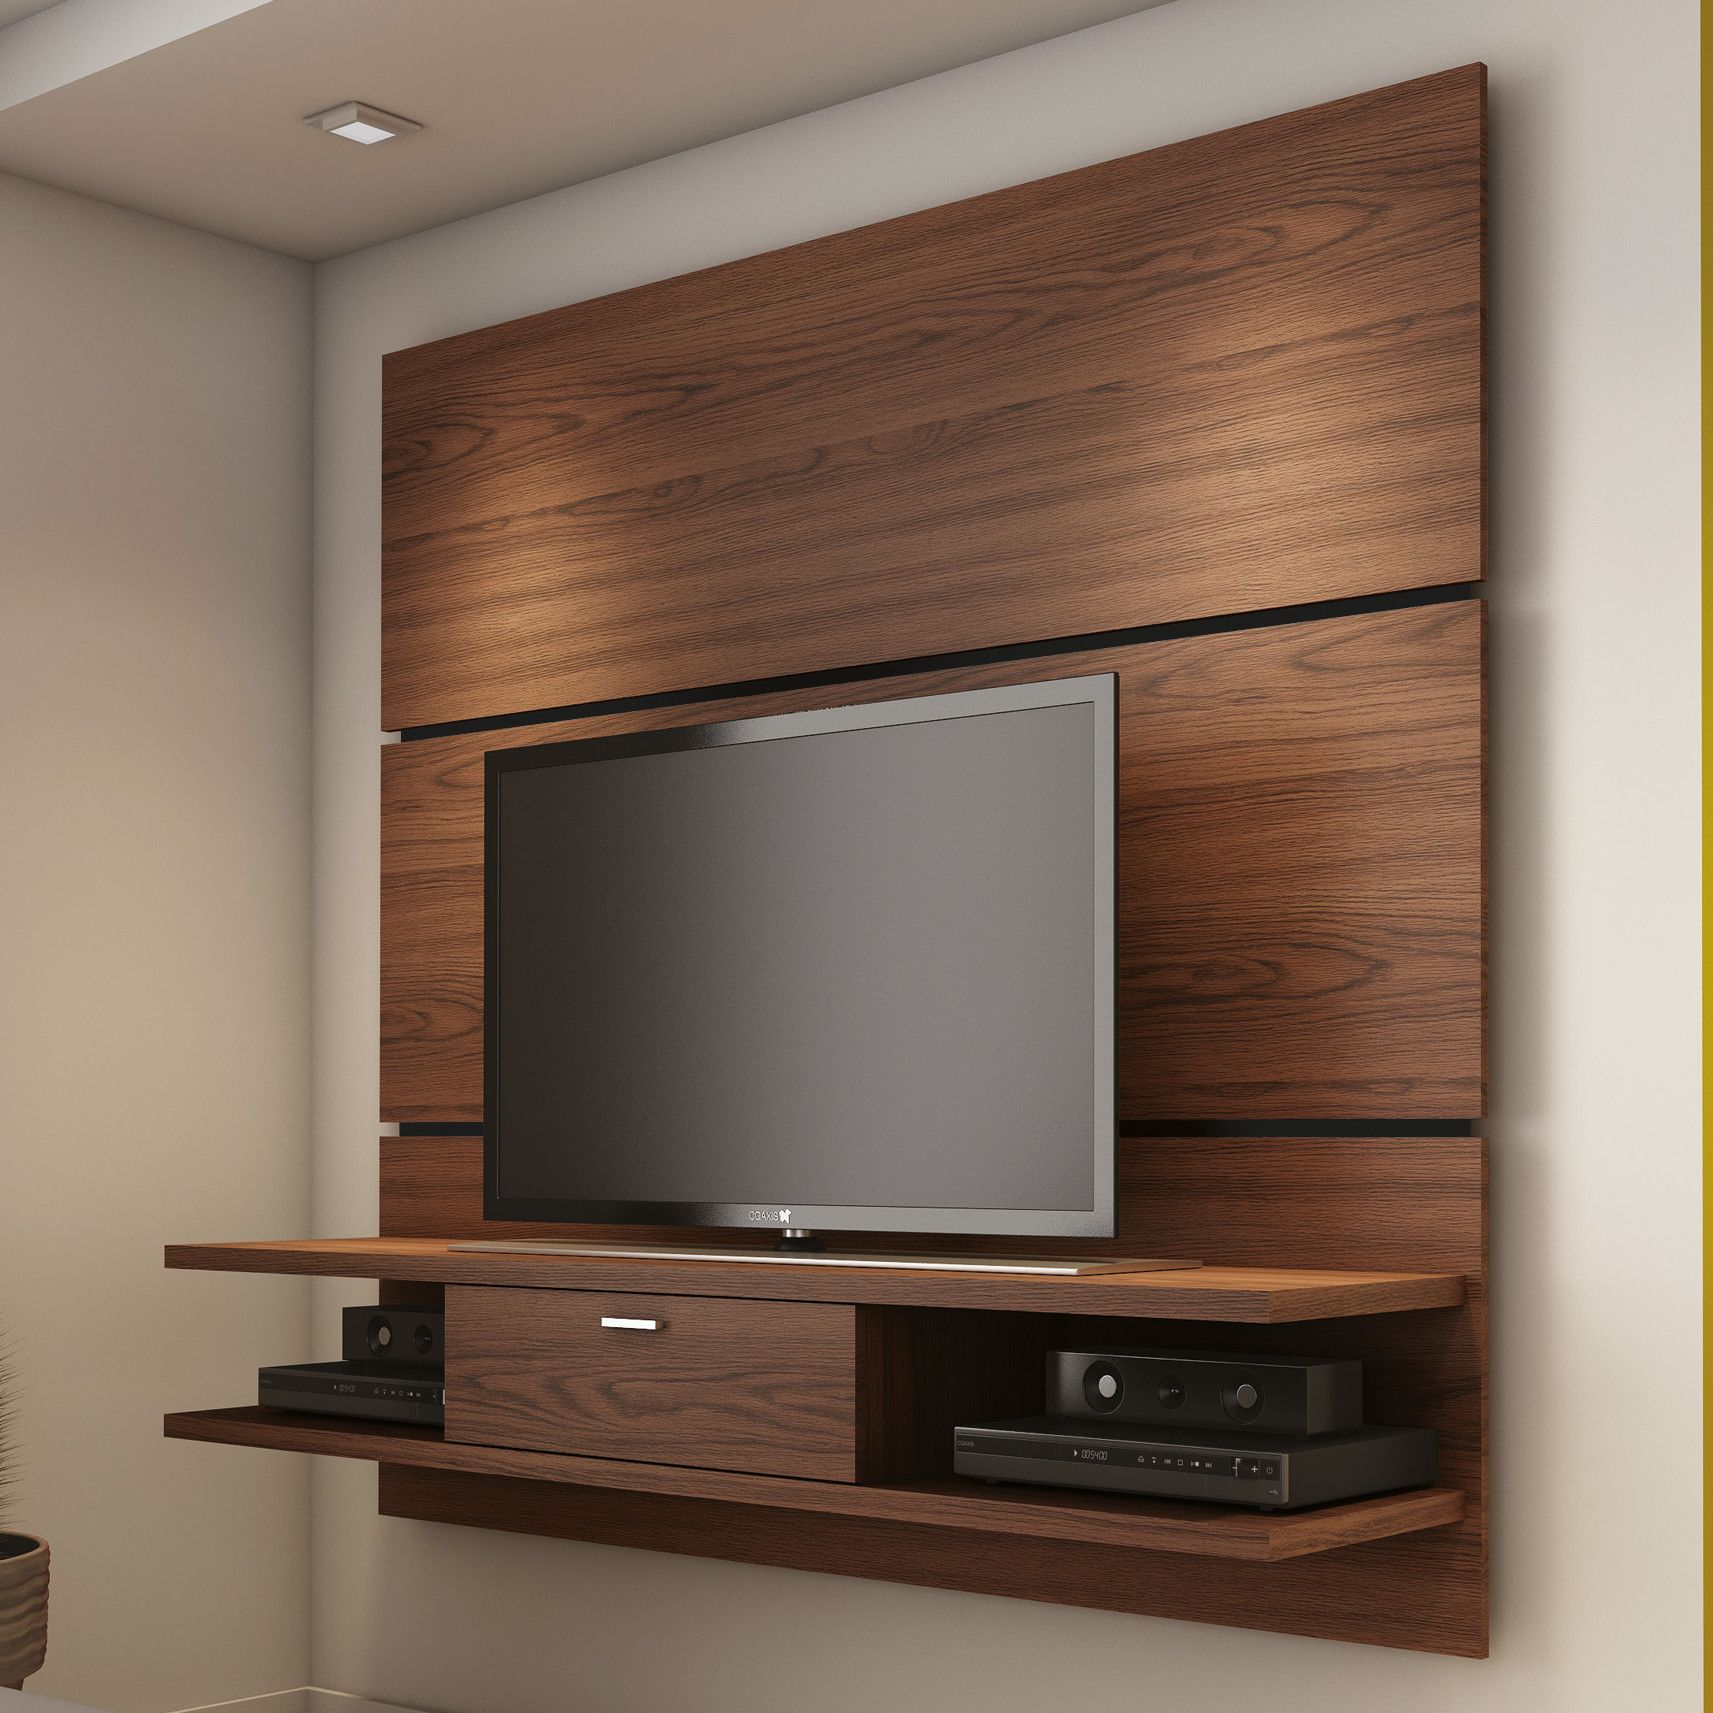 Bedroom tv entertainment center